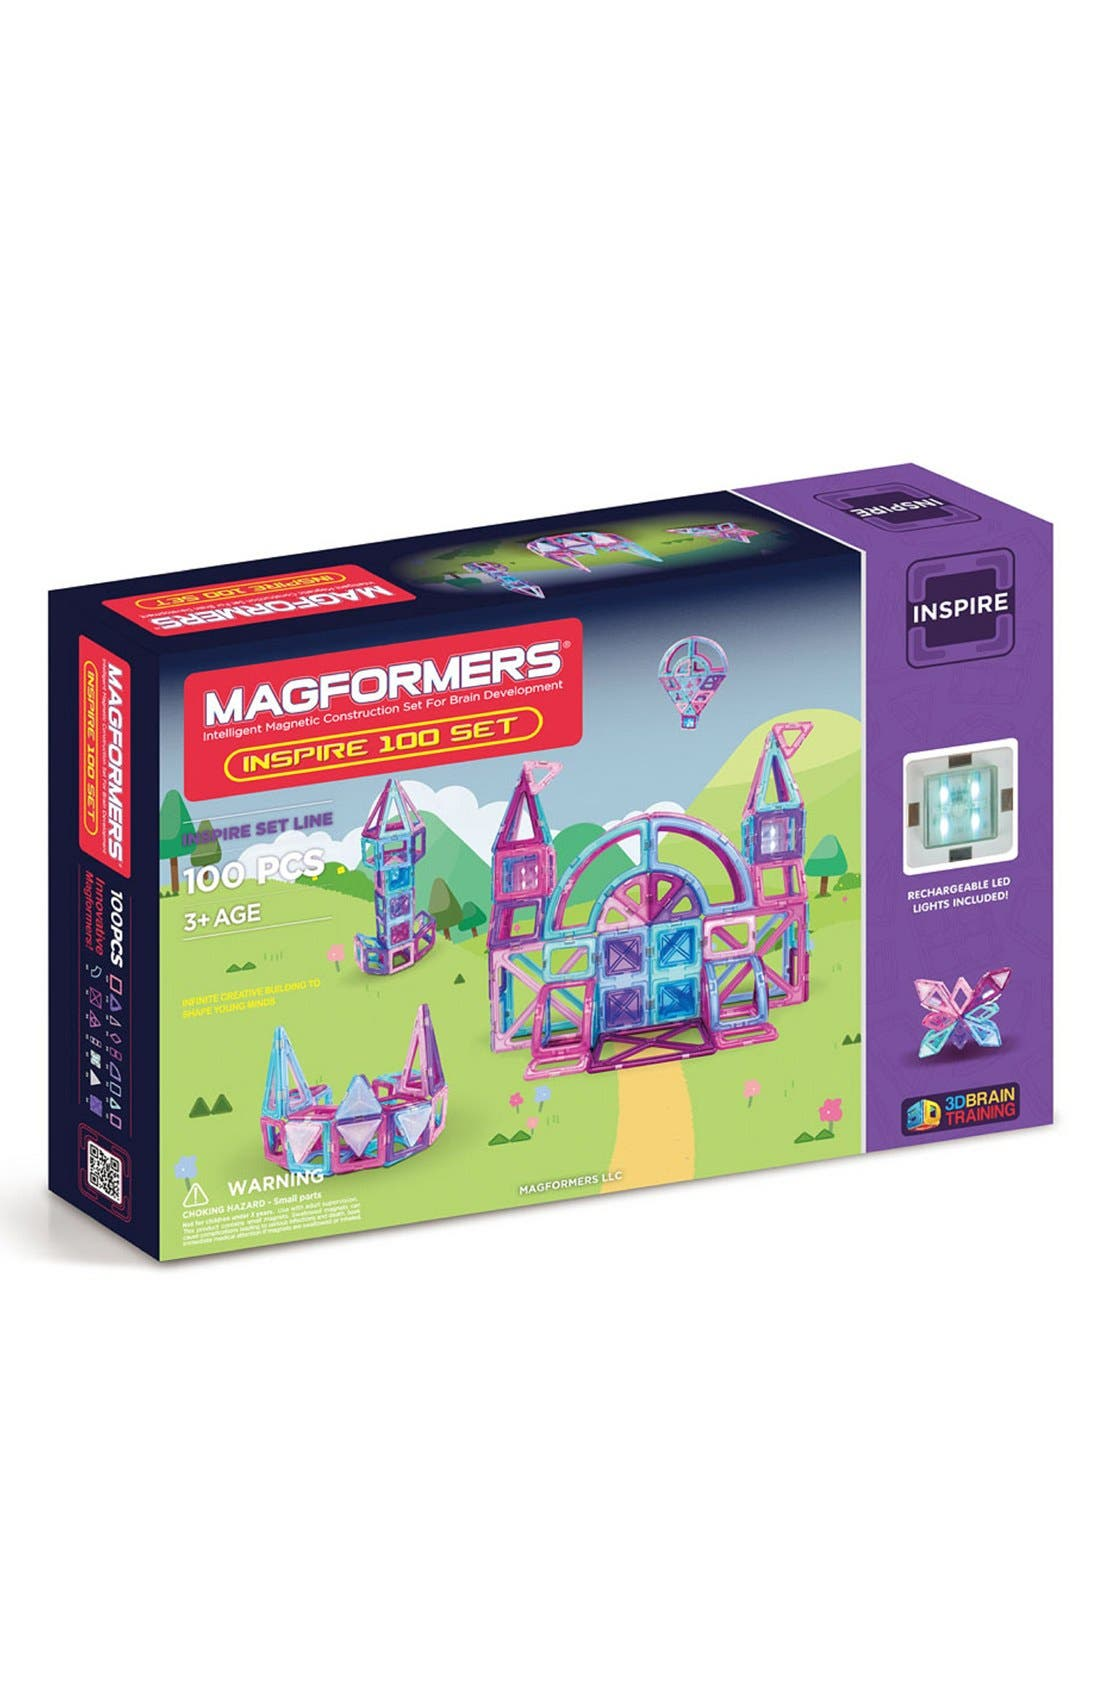 Main Image - Magformers 'Inspire' Magnetic Construction Set